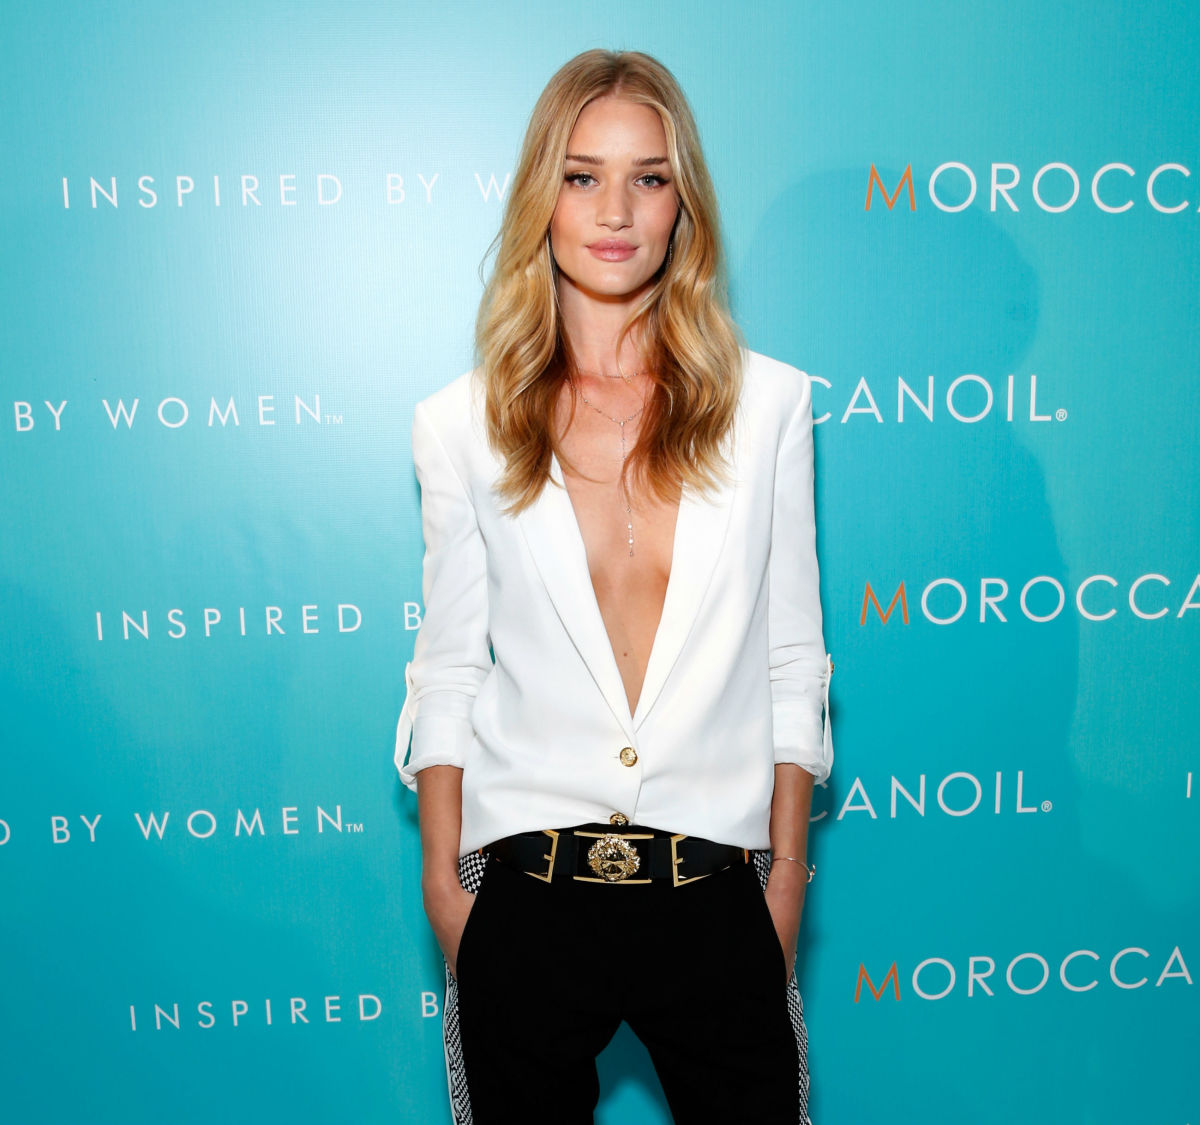 Rosie Huntington-Whiteley Is A Barbie, Case Closed On